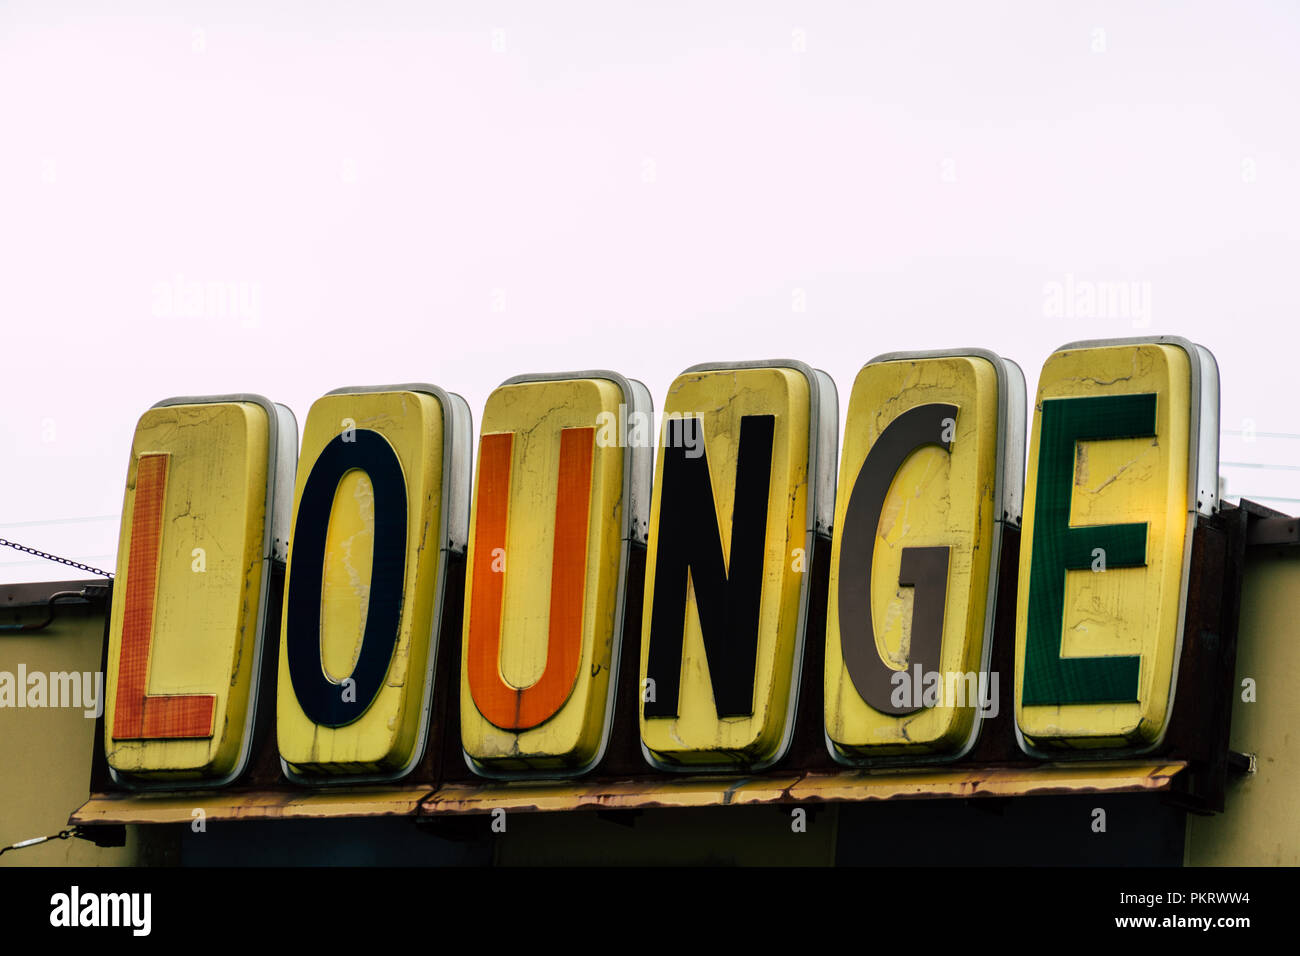 Generic lounge sign with mid century typeface font on overcast day - Stock Image